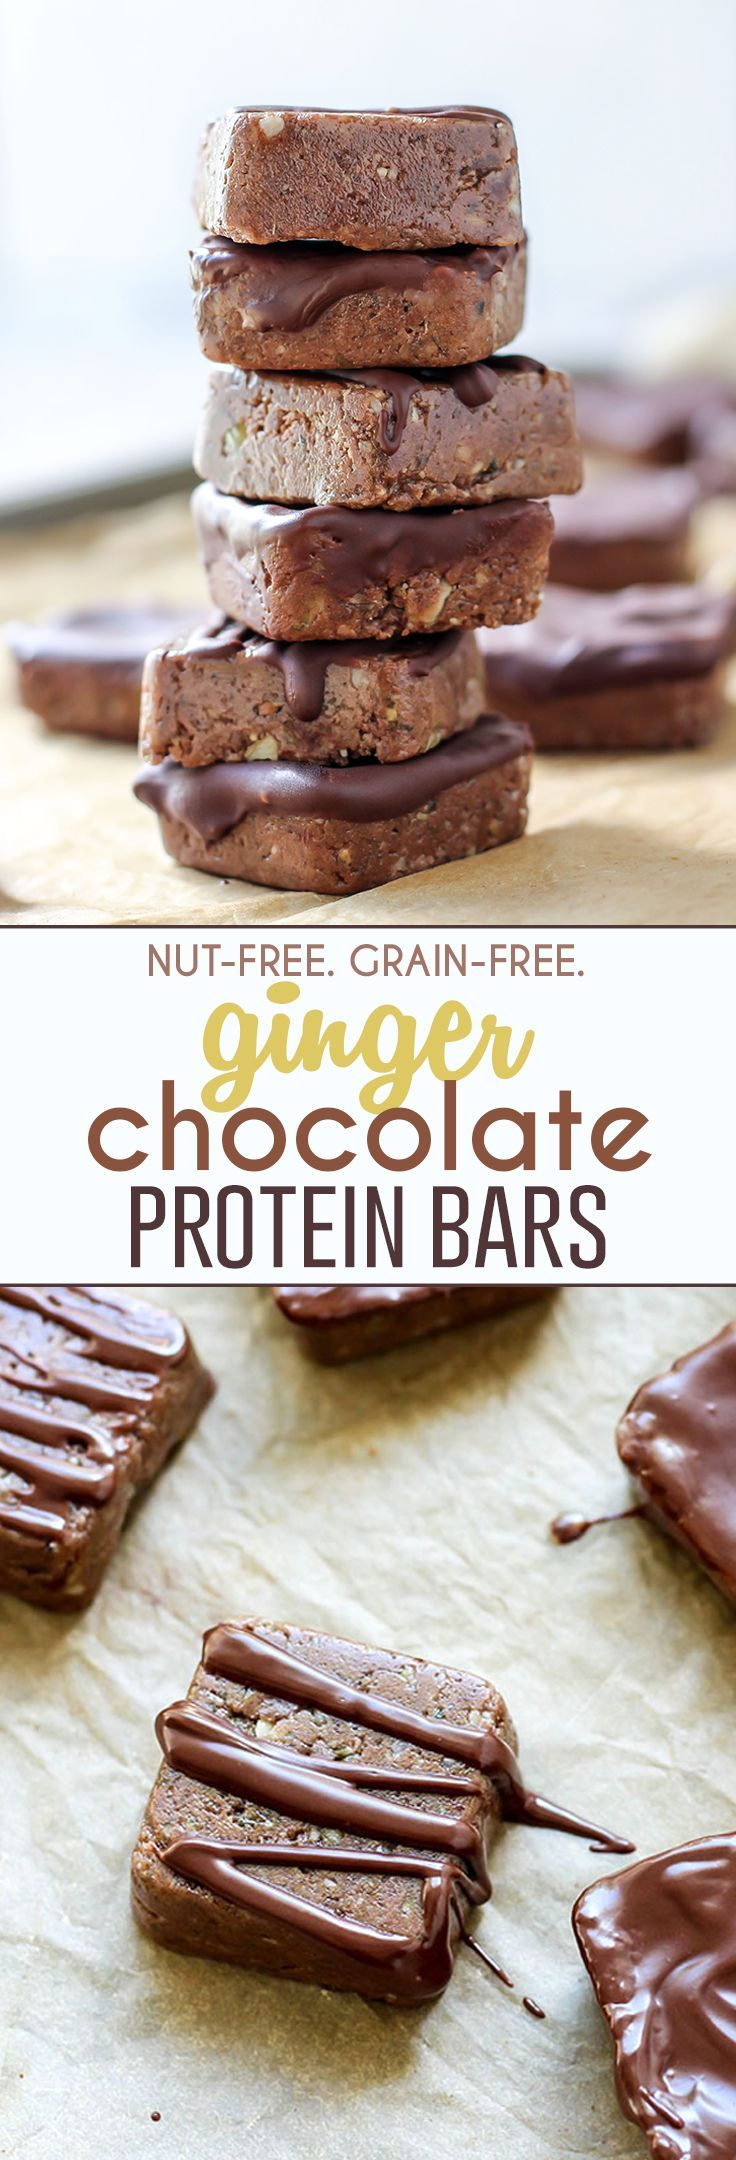 28 Best Food Images On Pinterest Biscuit Cookies Kitchens Chocochips Sully Dress White Ginger Chocolate Protein Bars That Are Nut Free And Grain Each Square